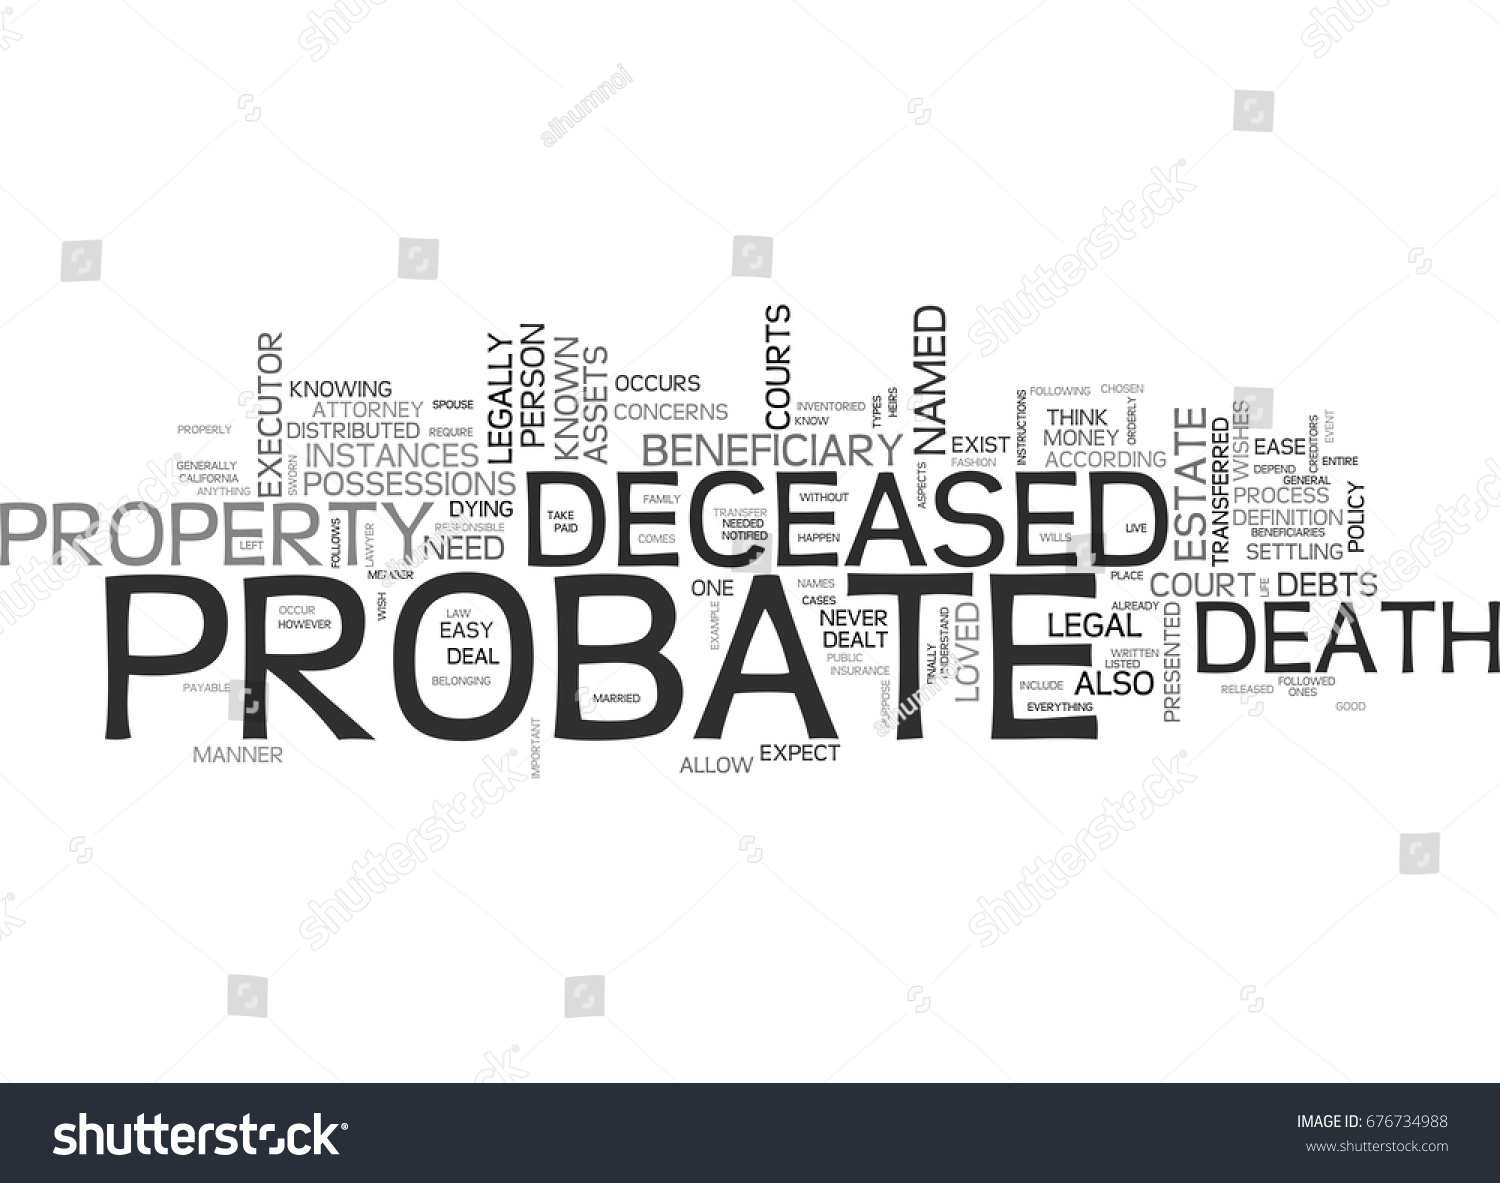 We assist with all probate, estate, deceased, death, named beneficiaries, property, courts, and law offices.